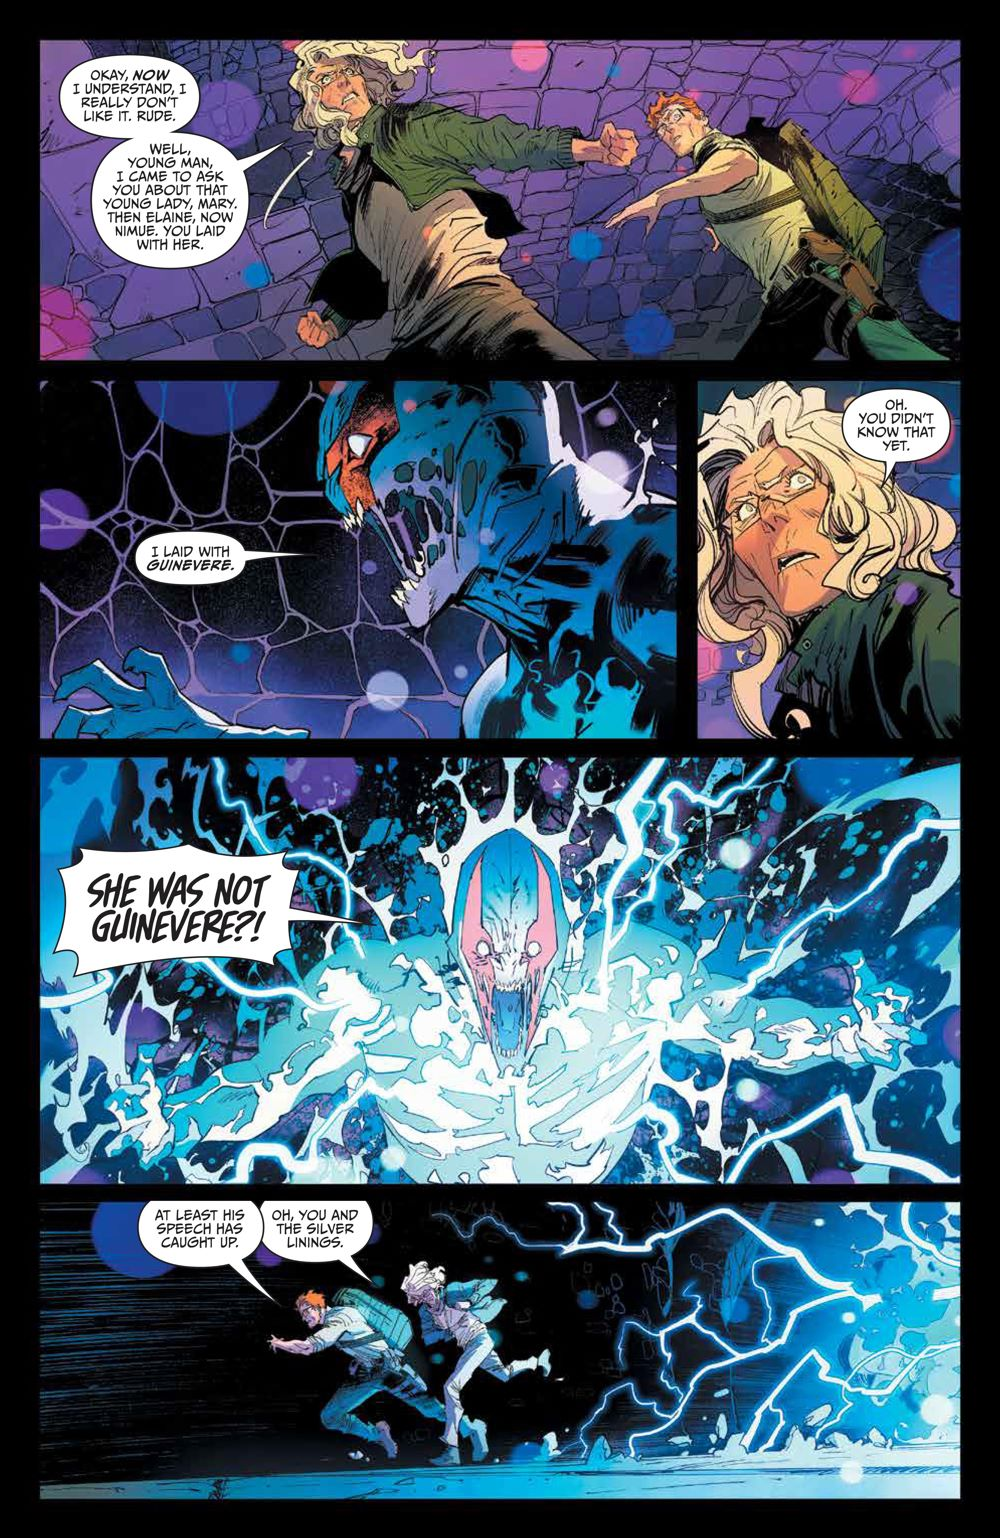 OnceFuture_016_PRESS_6 ComicList Previews: ONCE AND FUTURE #16